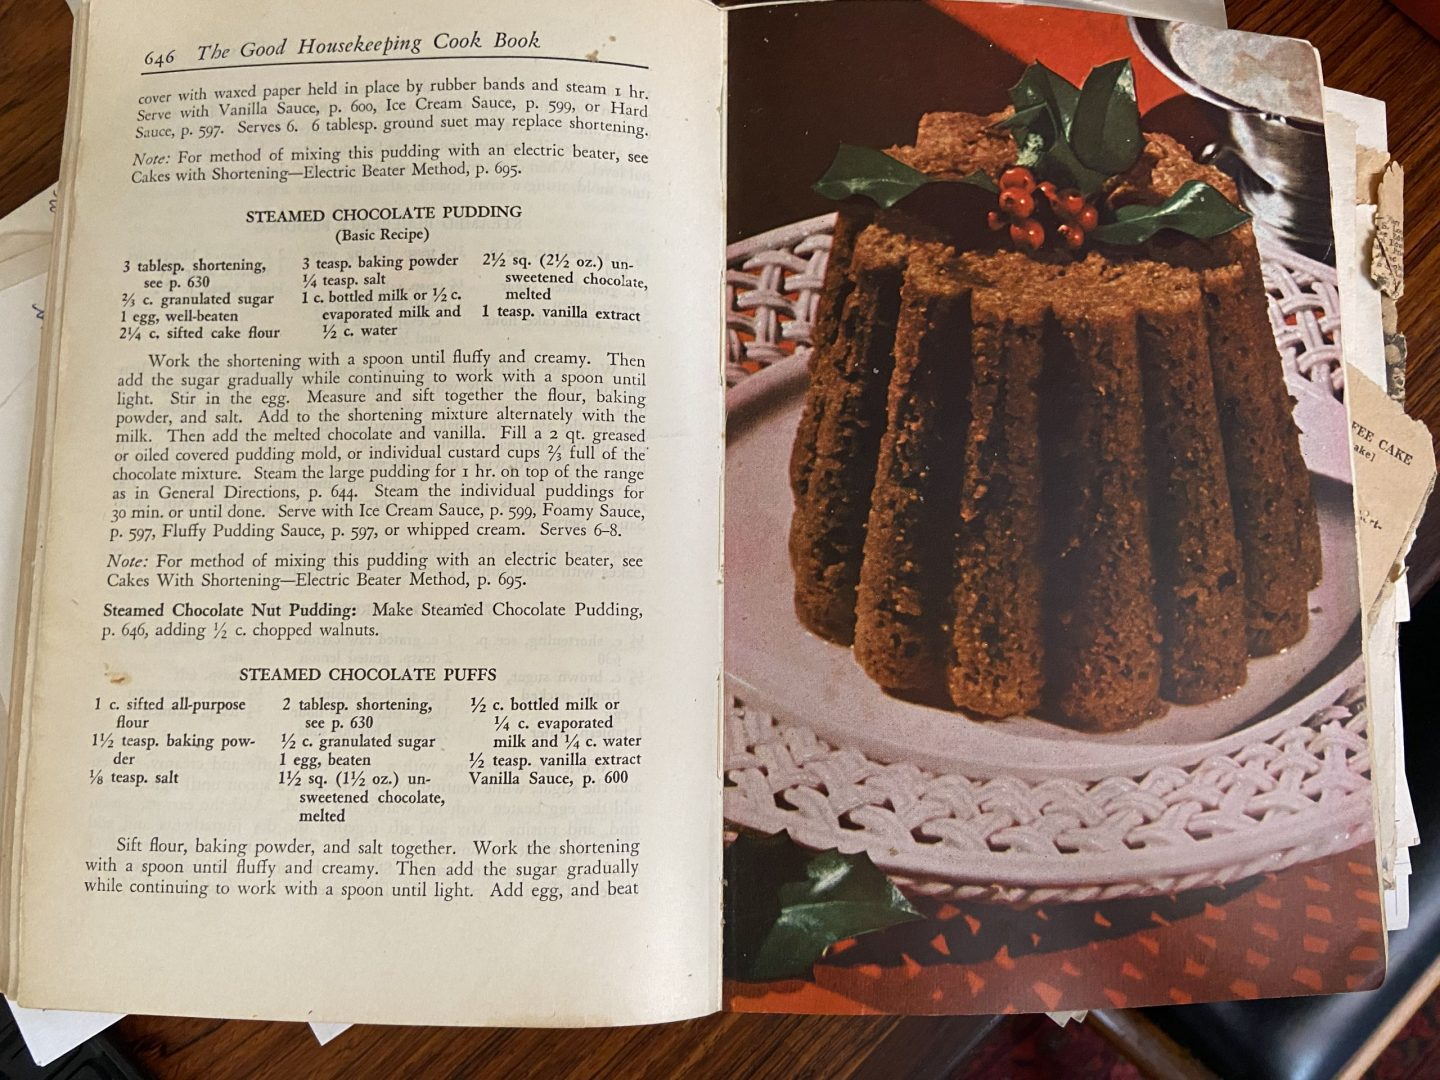 Image from the cookbook